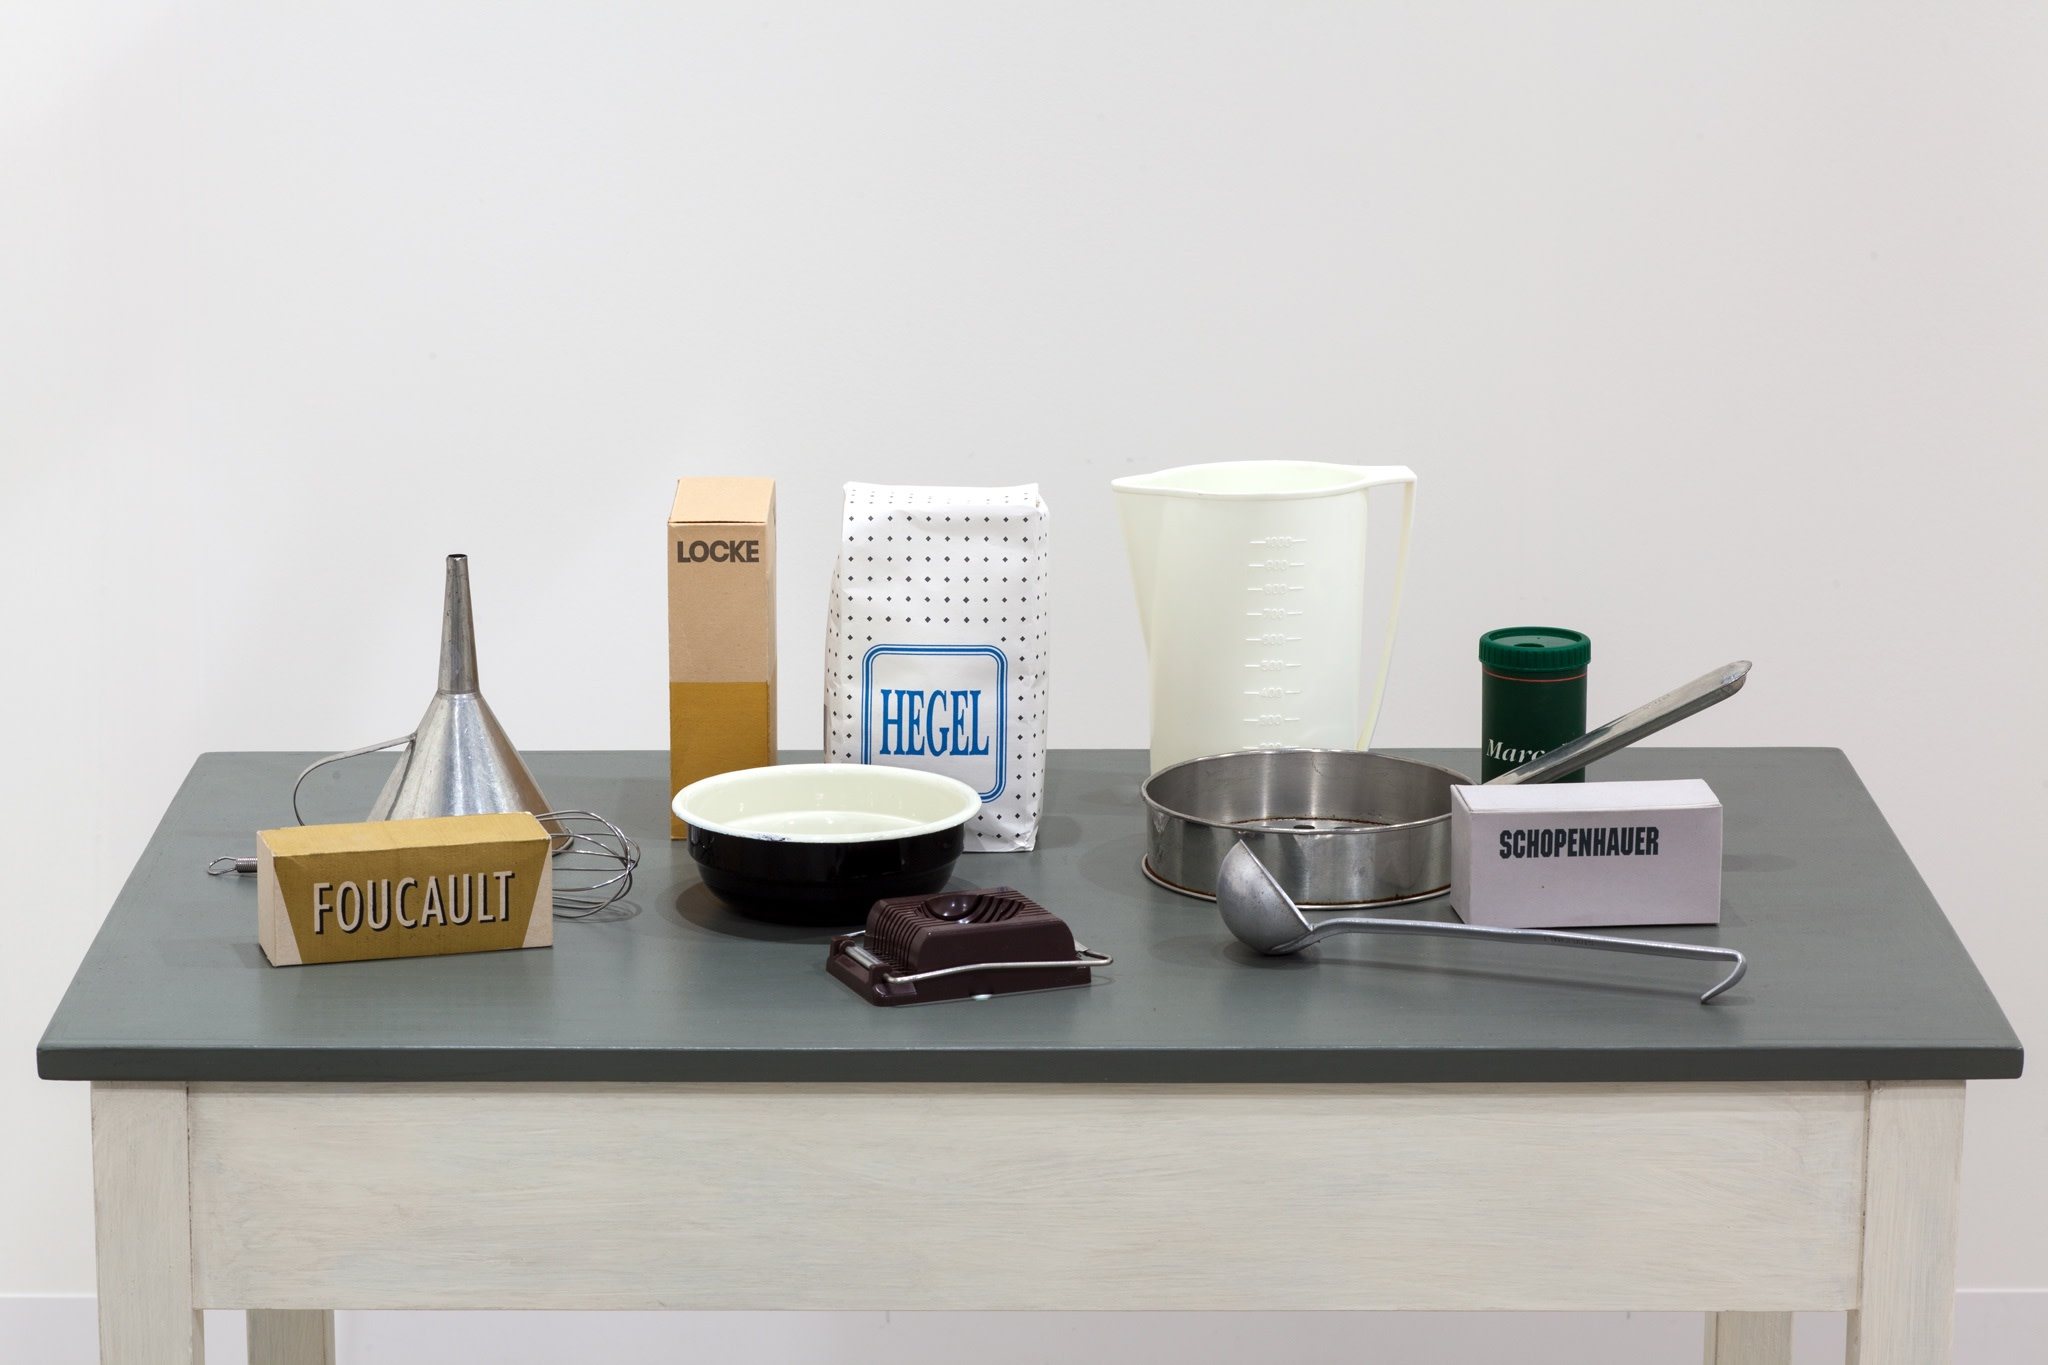 Detail: Roman Ondak, Sated Table, 1997, silkscreen print on cardboard, kitchen utensils, wooden table, 100 x 92 x 59 cm (39 3/8 x 36 1/4 x 23 1/4 in). Photo © Andrea Rossetti